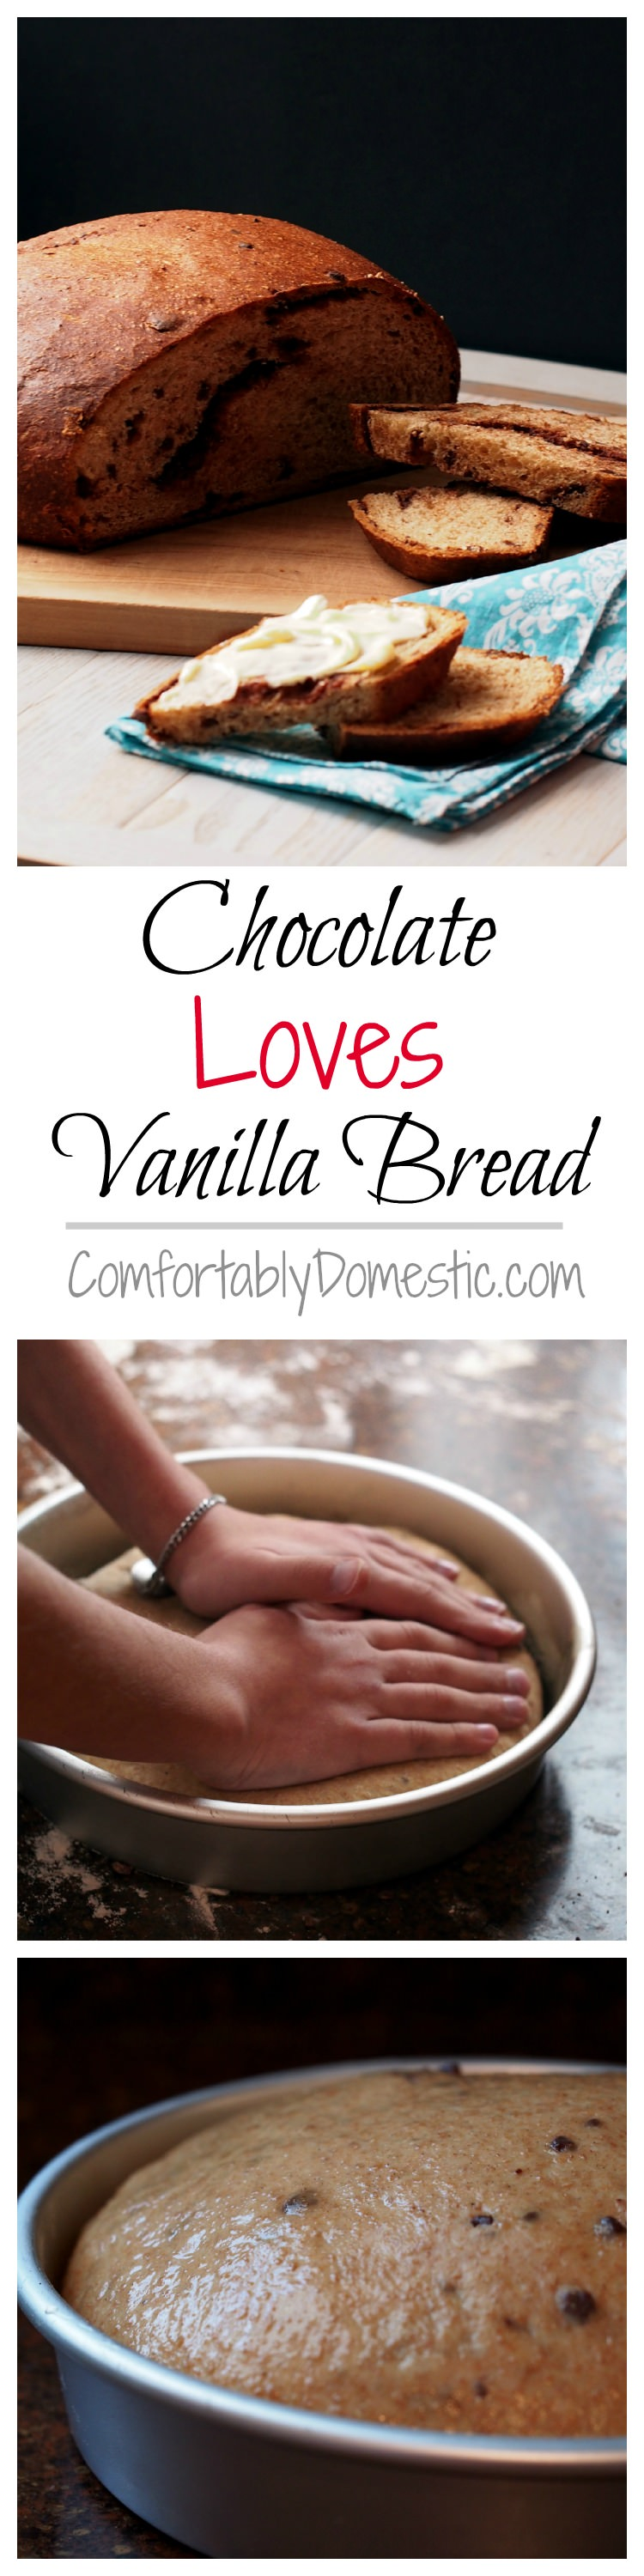 Chocolate Loves Vanilla Bread - Sweet, vanilla-infused whole grain sweet dough with a generous helping of chopped chocolate kneaded into tender loaves. | ComfortablyDomestic.com